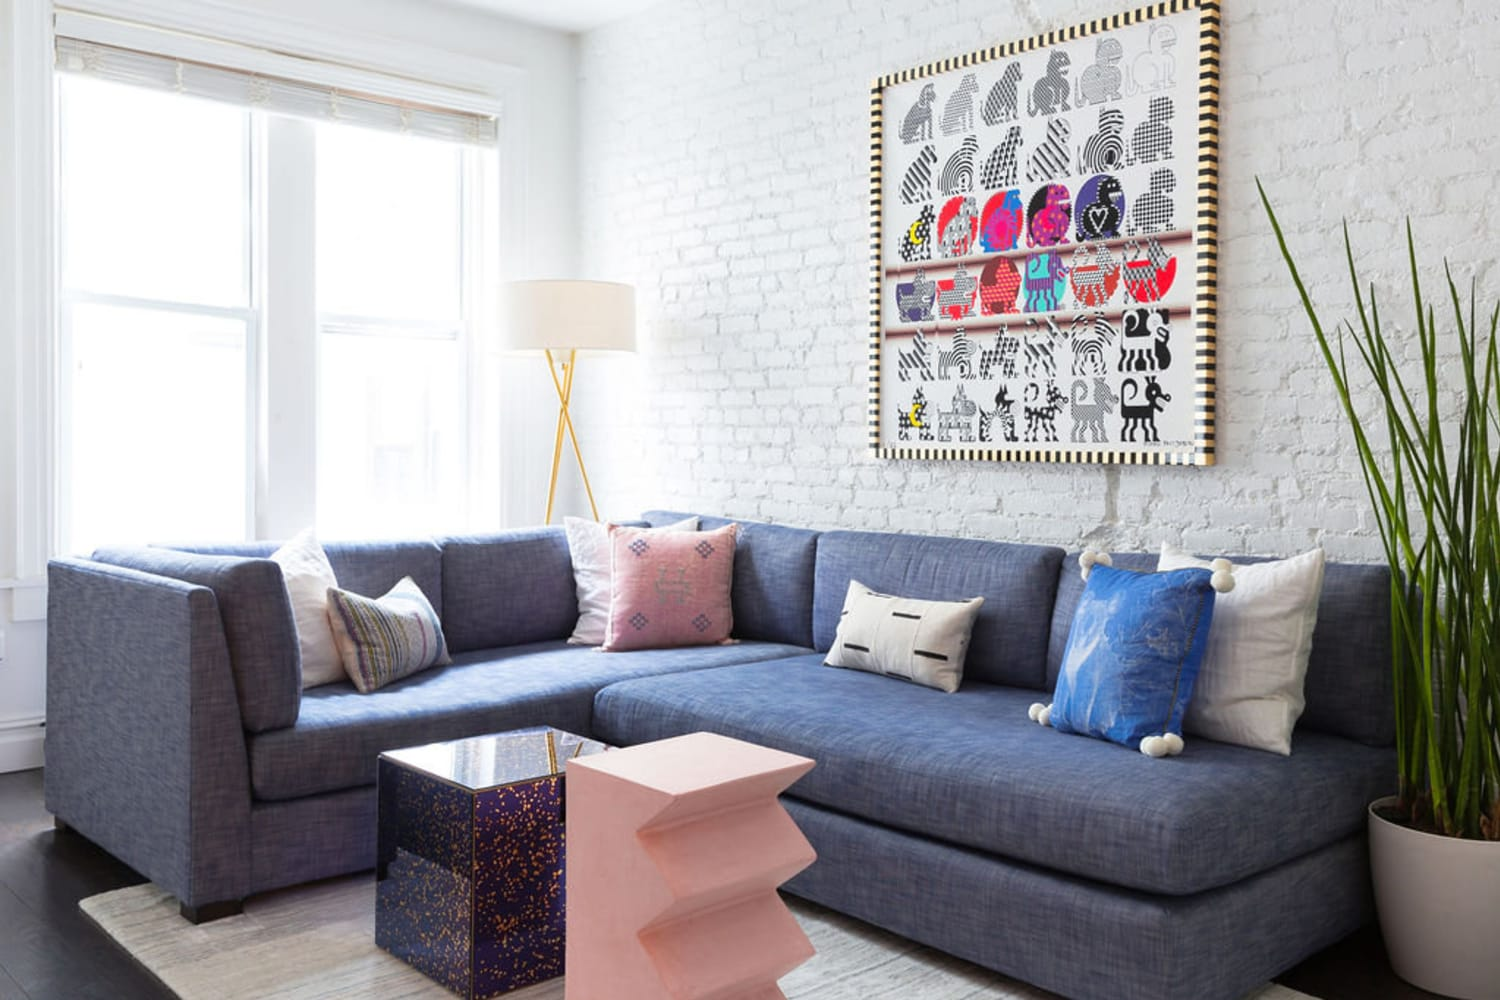 7 Living Room Decorating Hacks That Are Totally Free — I Promise!